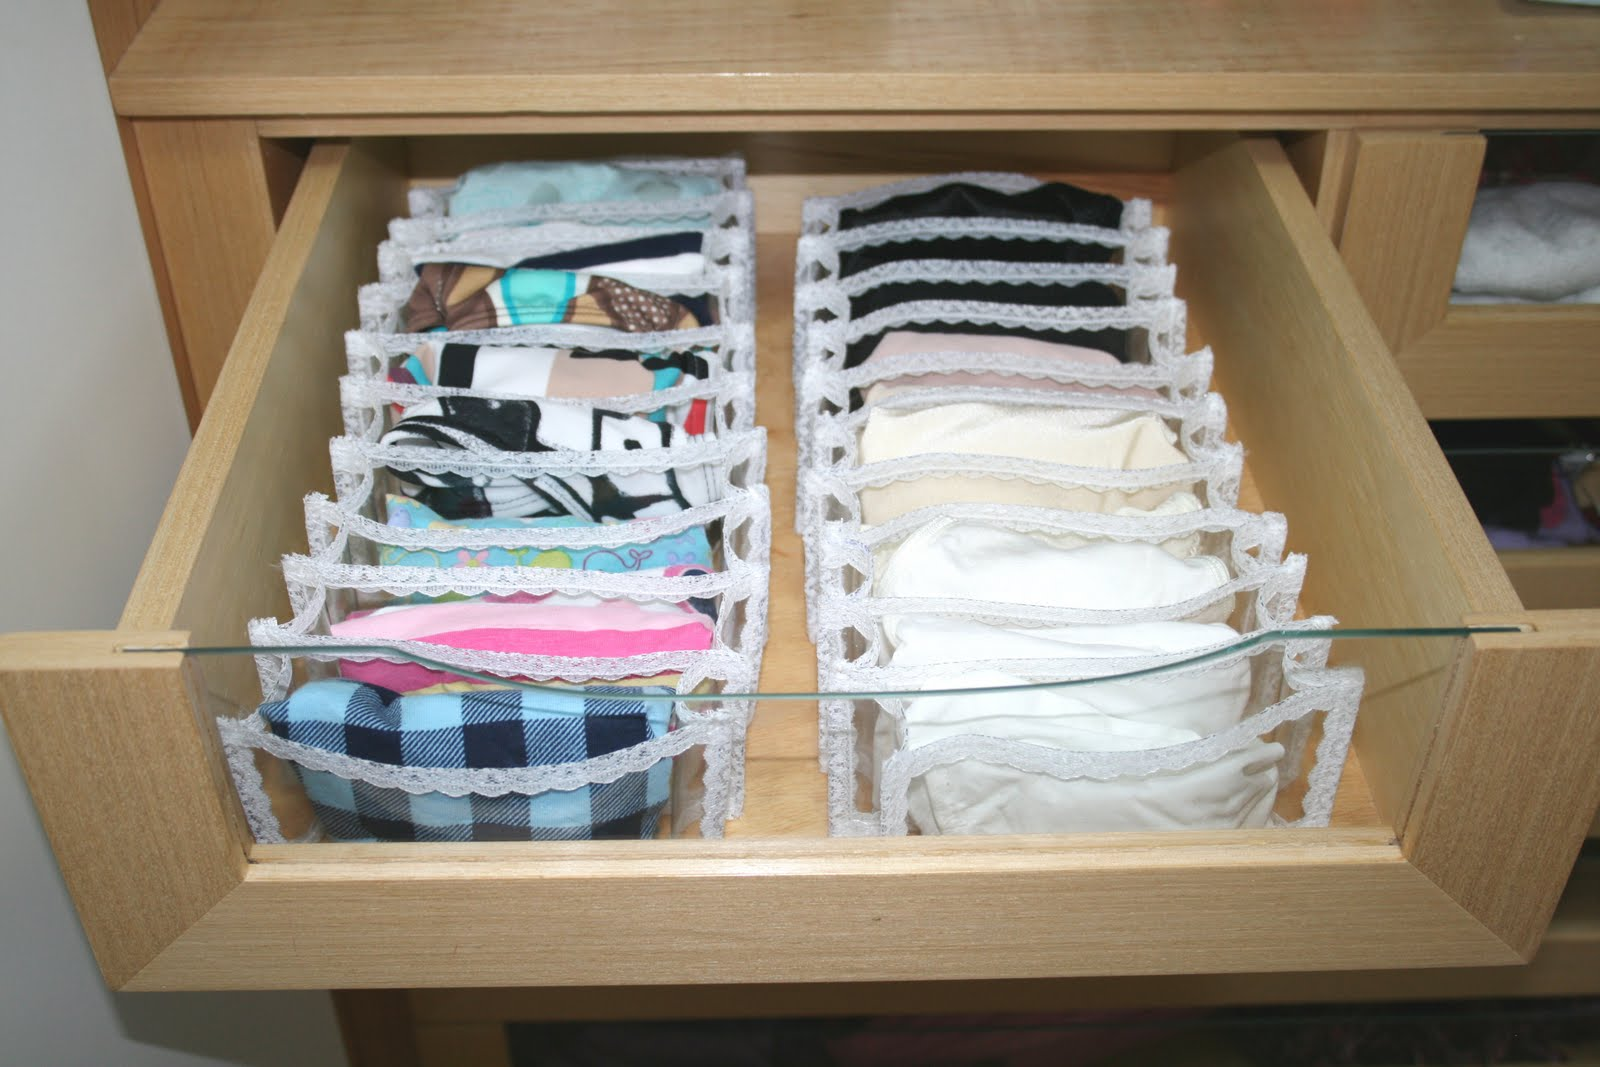 Make it Easy: Como organizar gaveta de calcinhas #437688 1600x1067